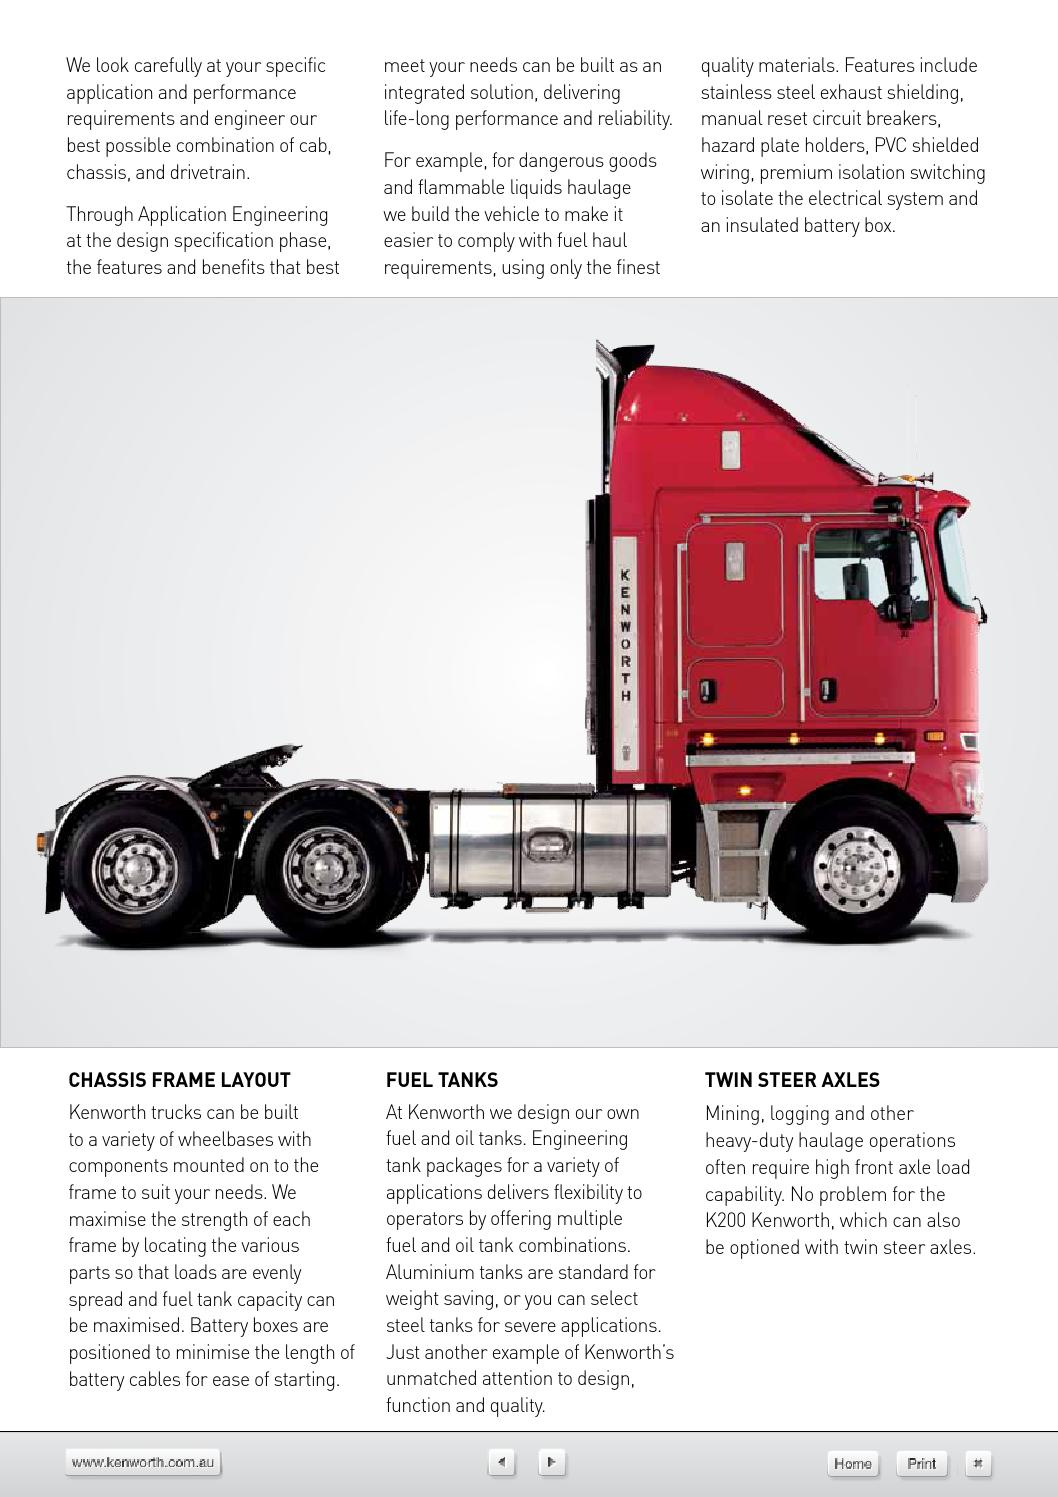 Kenworth K200 Trucks by LoganHowell - issuu